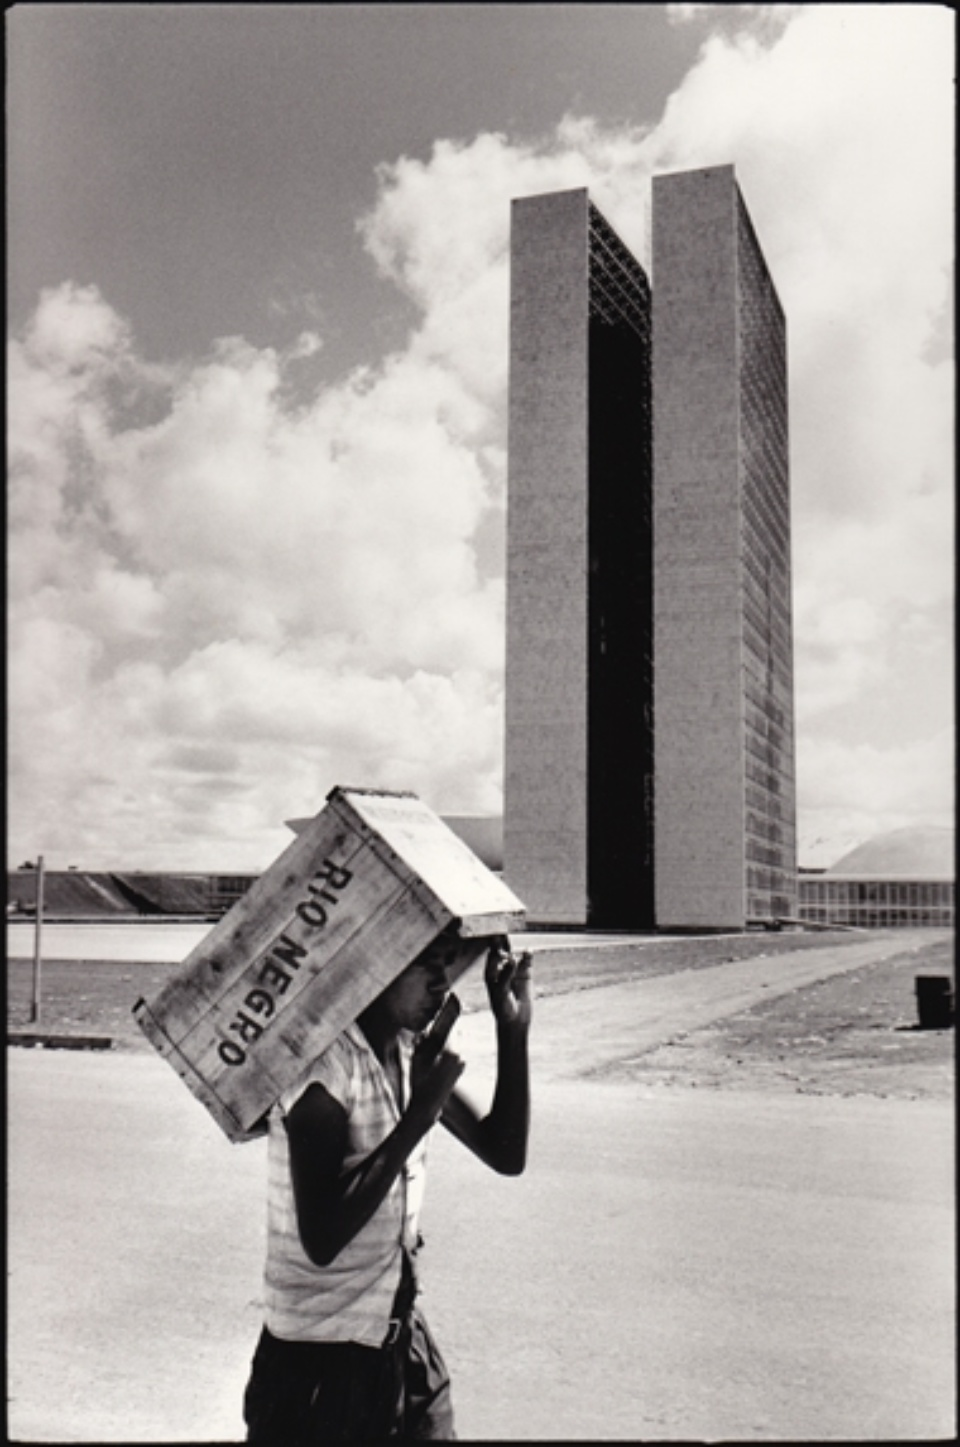 René Burri Brasilia Brasilien, 1960 Signed, titled and dated on verso Gelatin silver print, printed later